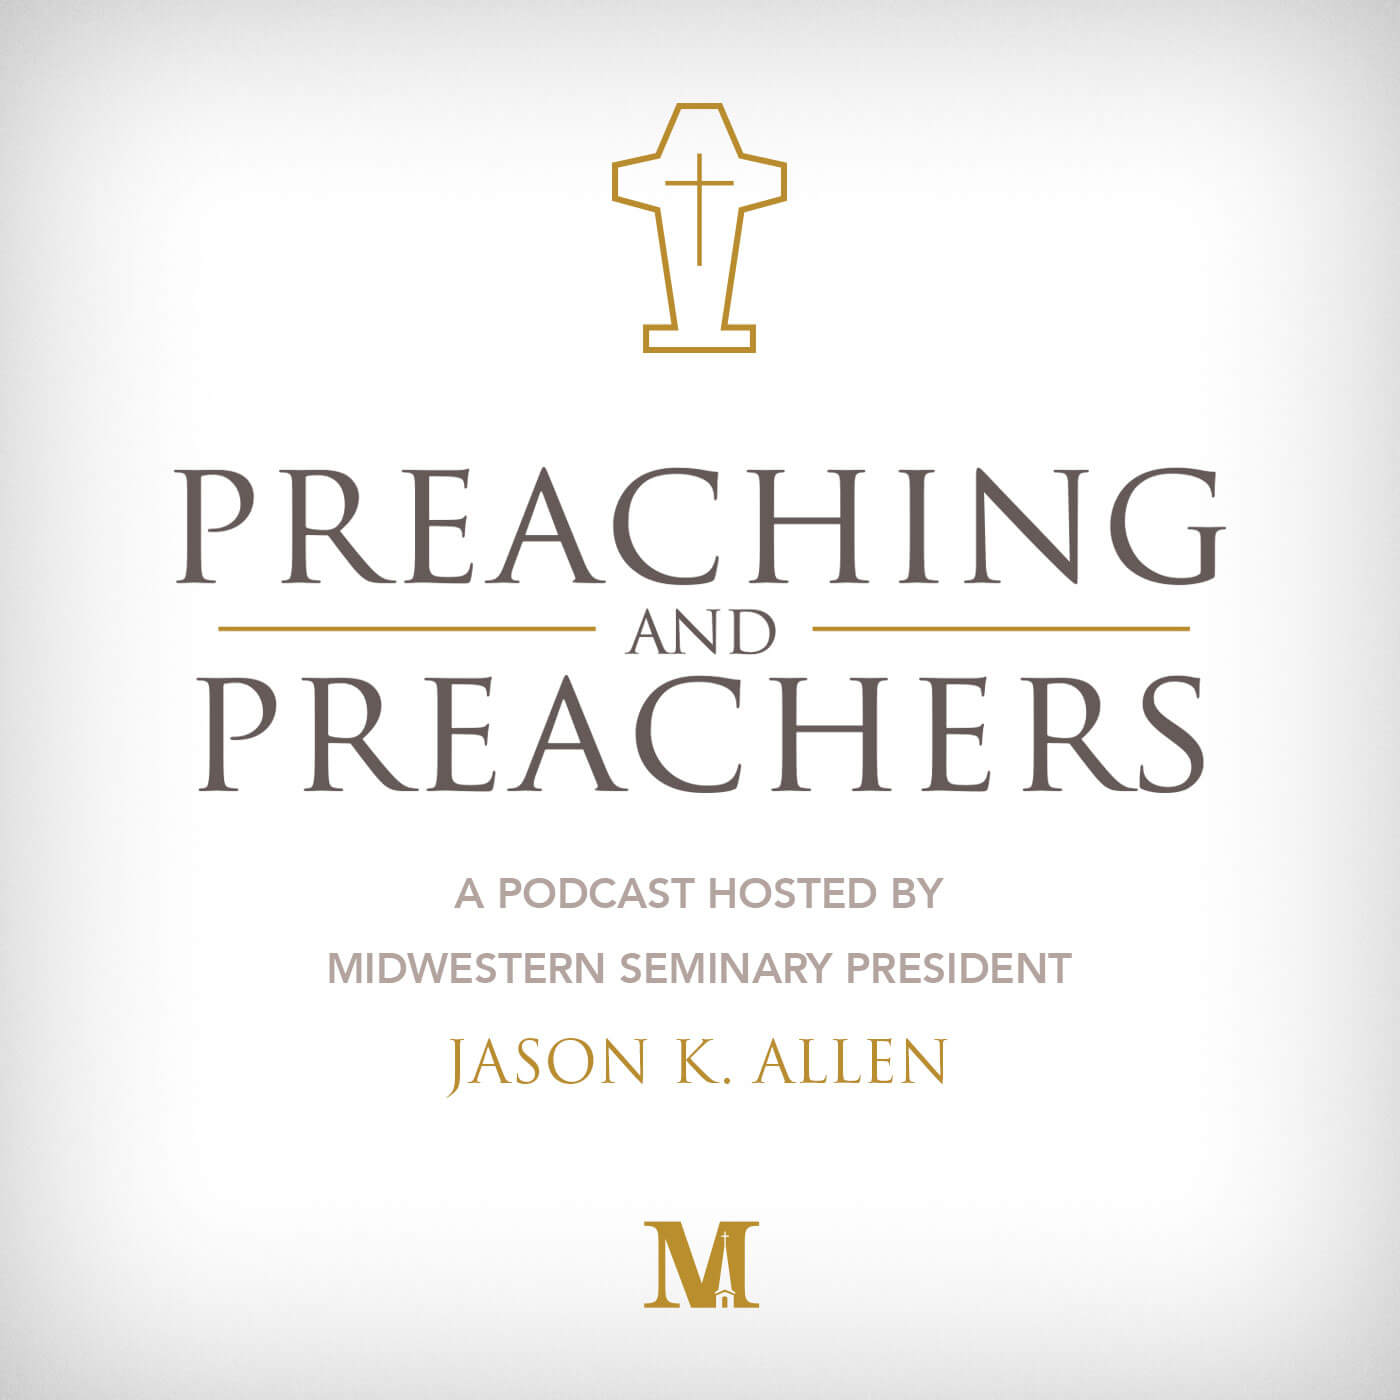 Preaching and Preachers podcast image